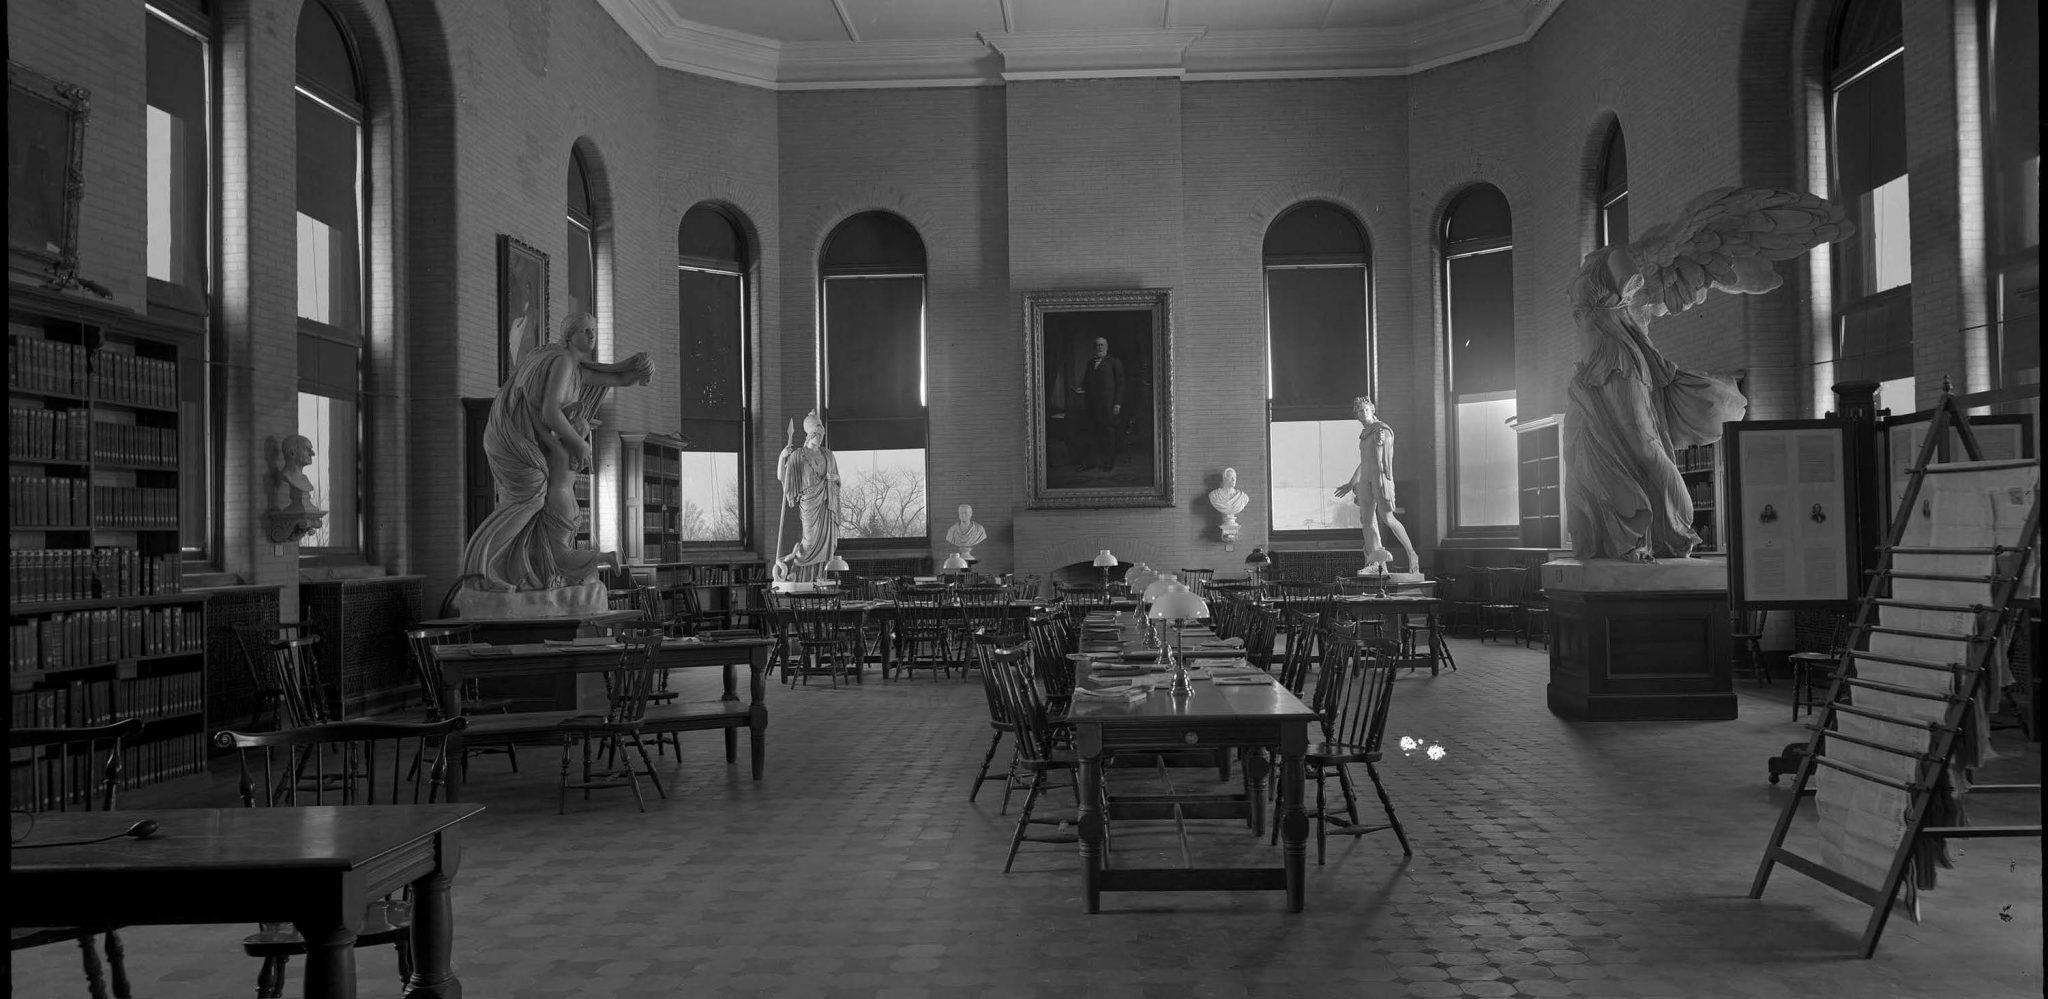 <p>West end of reading room in library with winged statue, 1904. Photo by Edward H. Stone.</p><p>Edward H. Stone Collection. Special Collections and University Archives, Colgate University Libraries.</p>